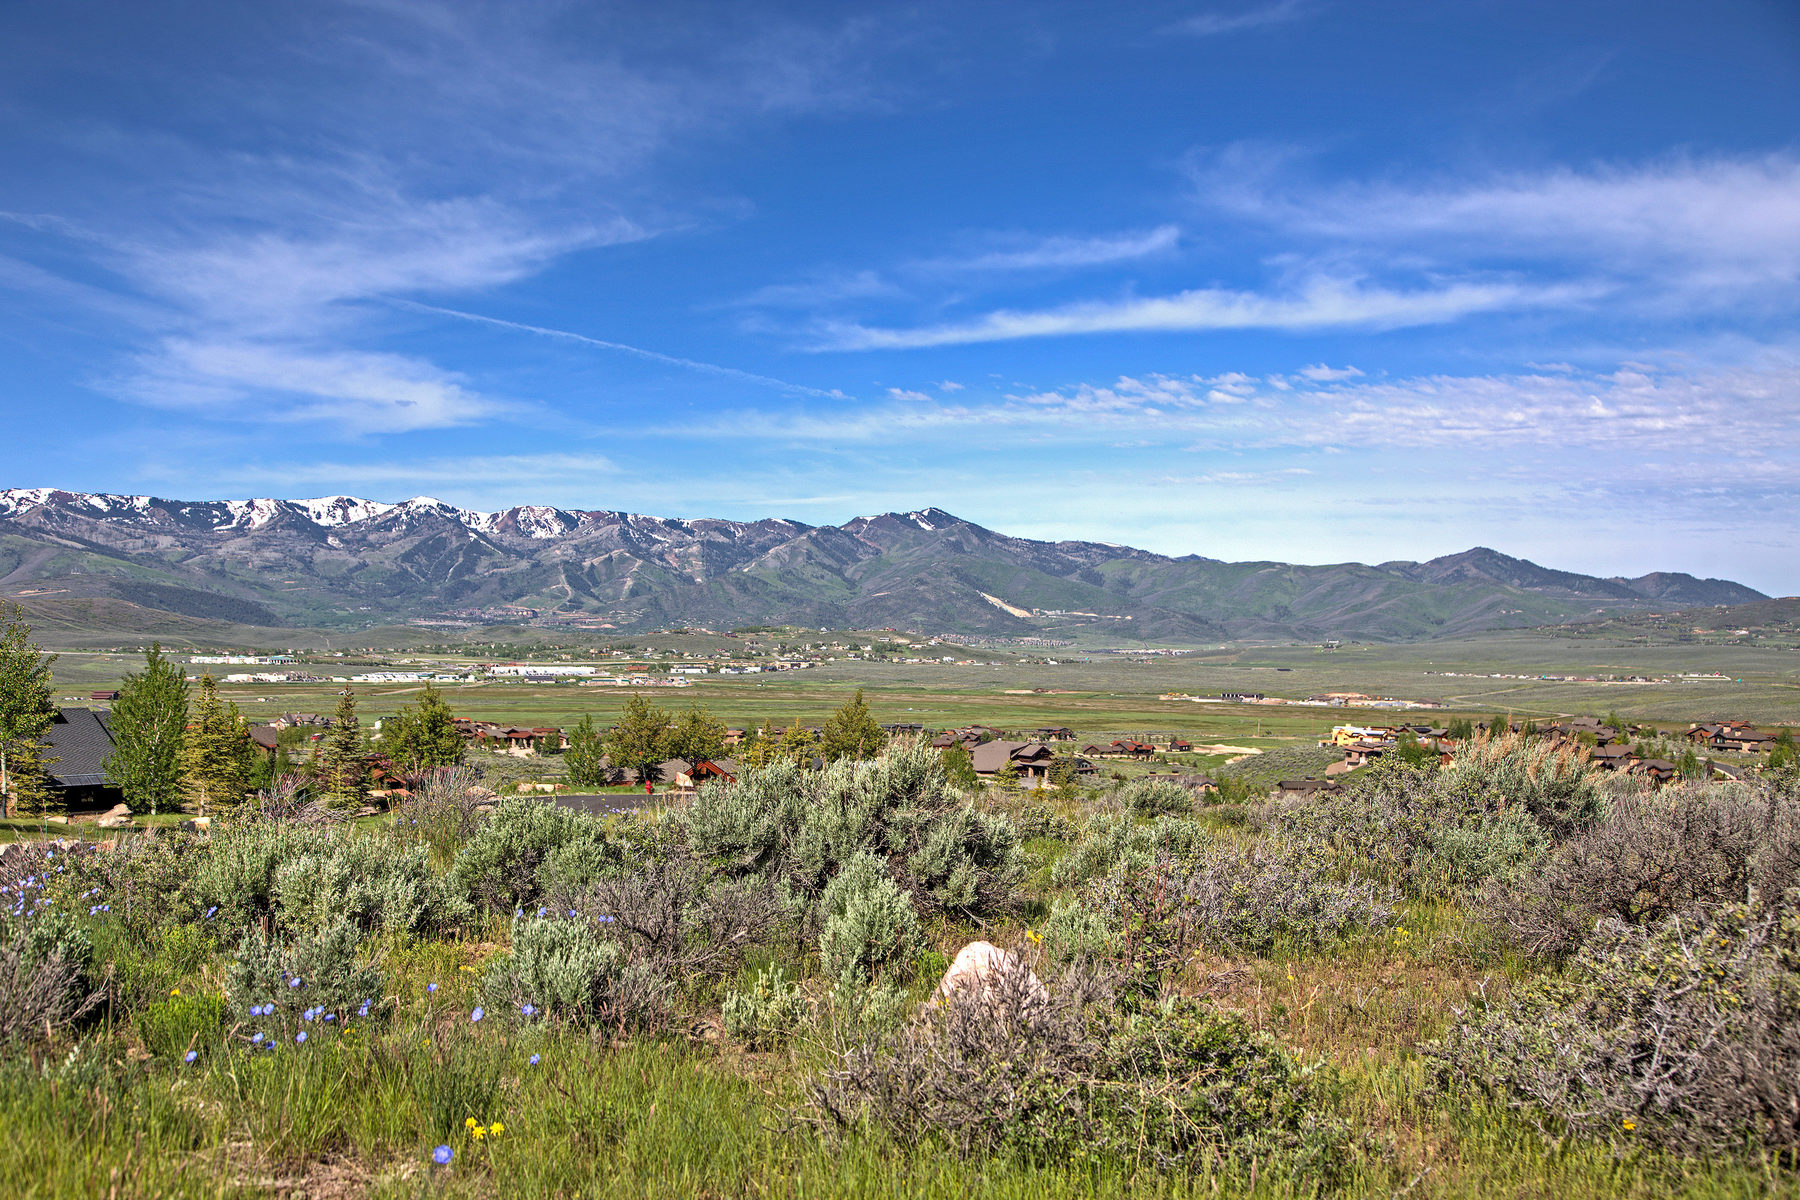 Land for Sale at Fabulous One Acre View Lot In Sunset Ridge With 115,000 Golf Membership Deposit 2979 Saddleback Rdg Lot 35 Park City, Utah, 84098 United States